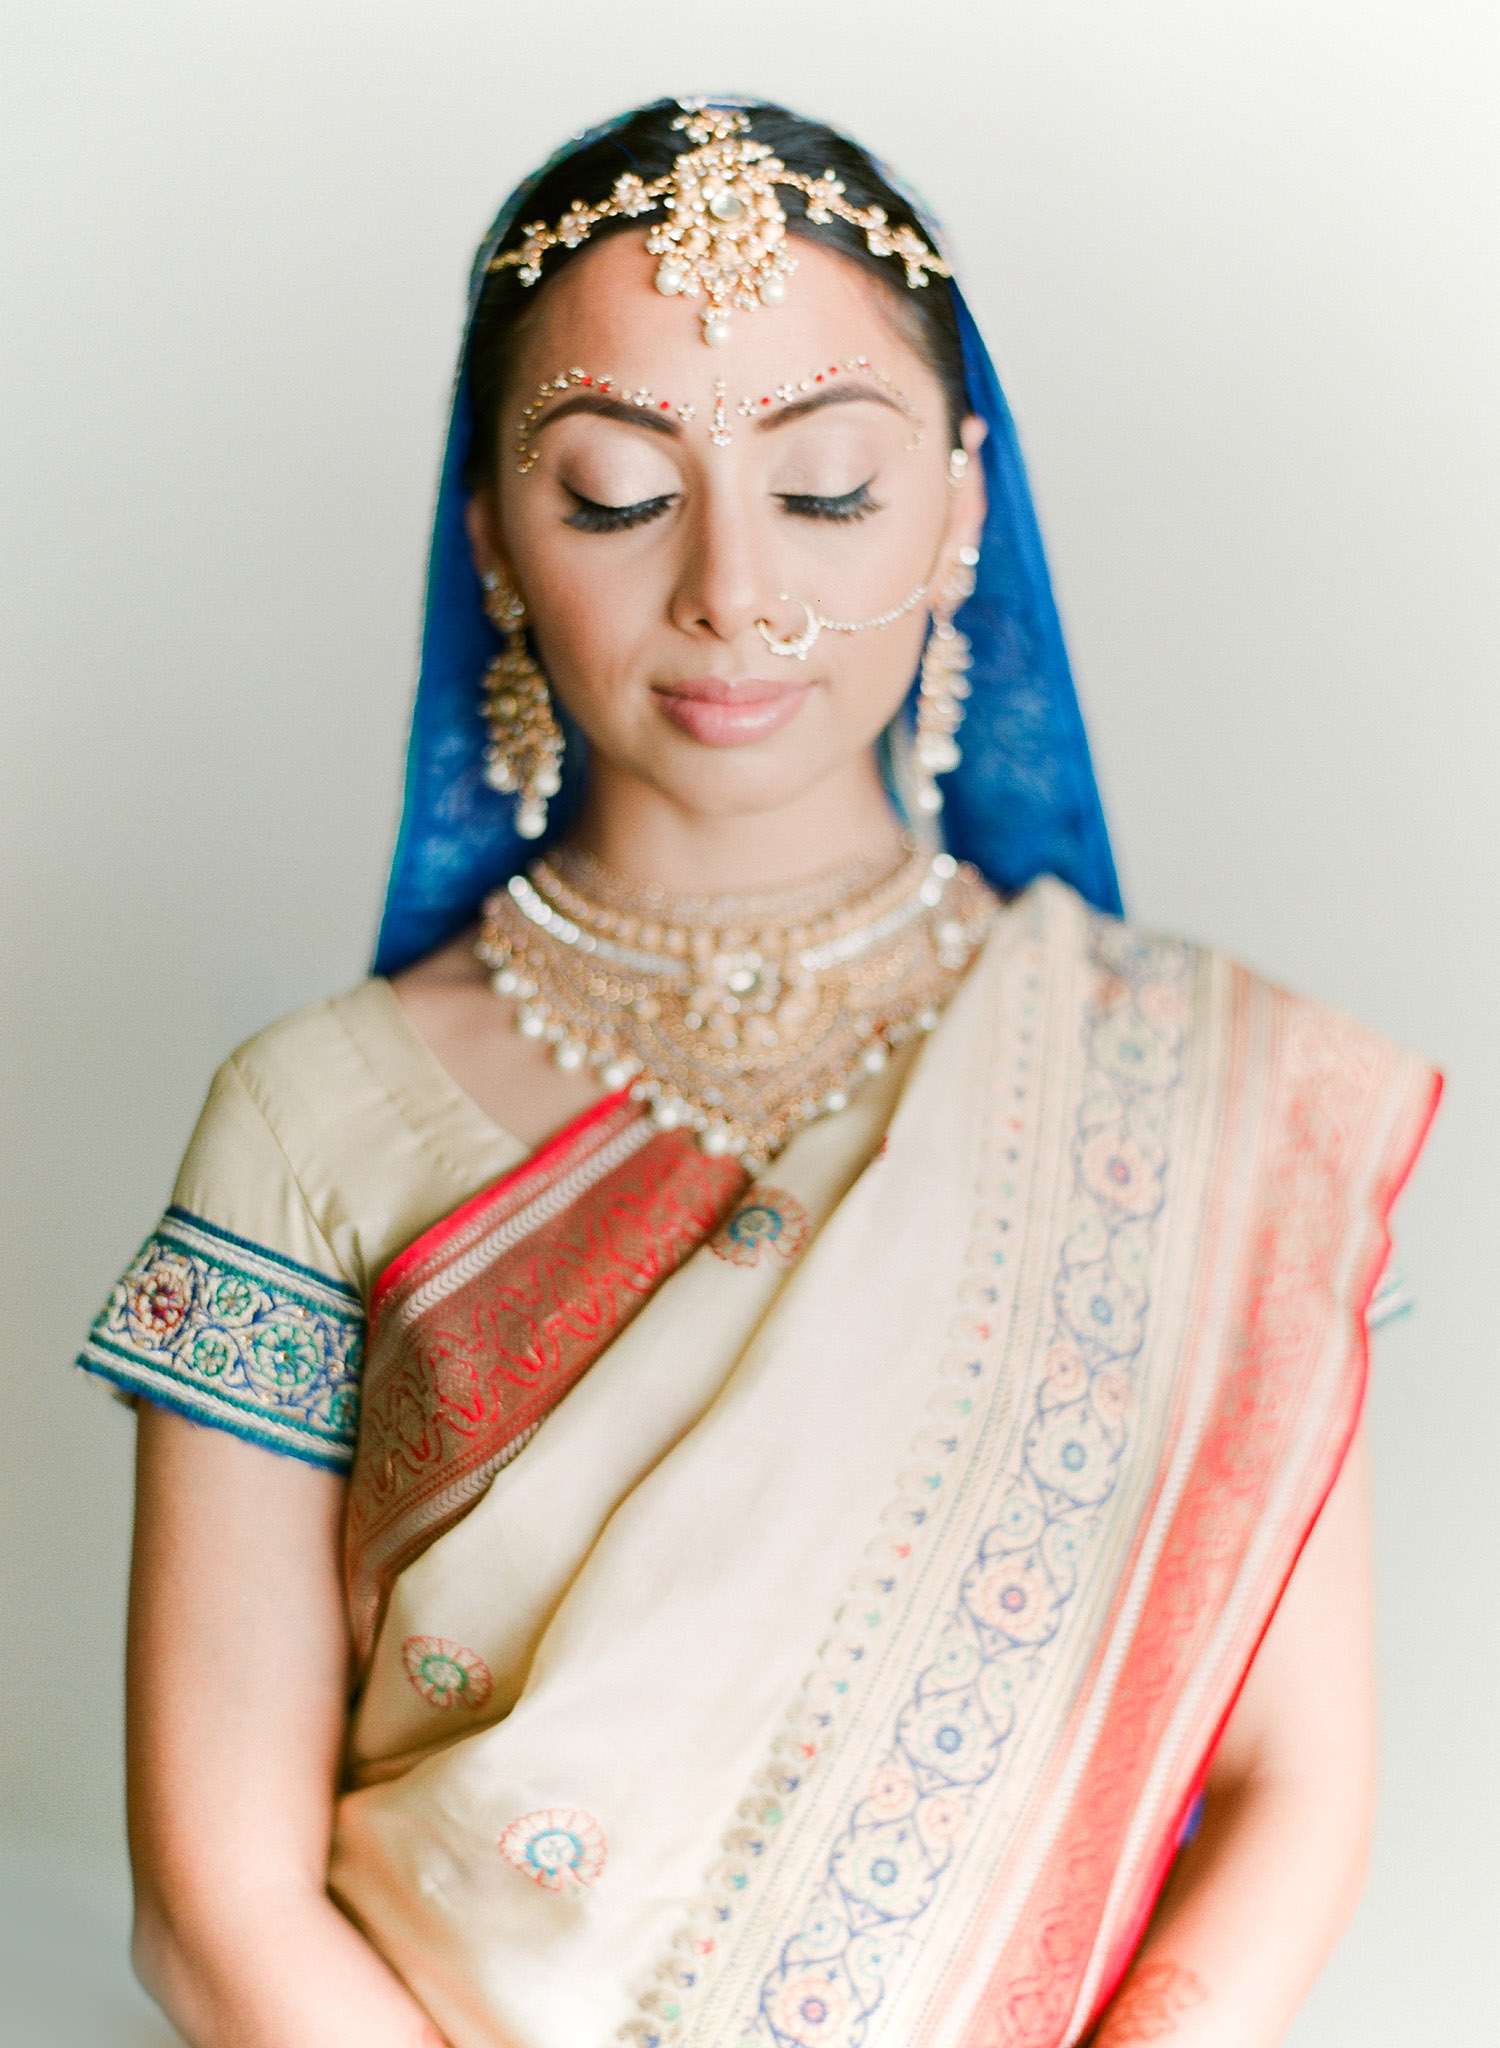 destination indian wedding photographer, Lexia Frank, a top indian wedding photographer for luxury indian weddings, photographs this hindu bride wearing her mother's vintage saree on film as she is a film photographer for indian weddings because she prefers the beautiful skin tones and vibrant colors for indian weddings in india and worldwide. manish malhotra and suneet varna